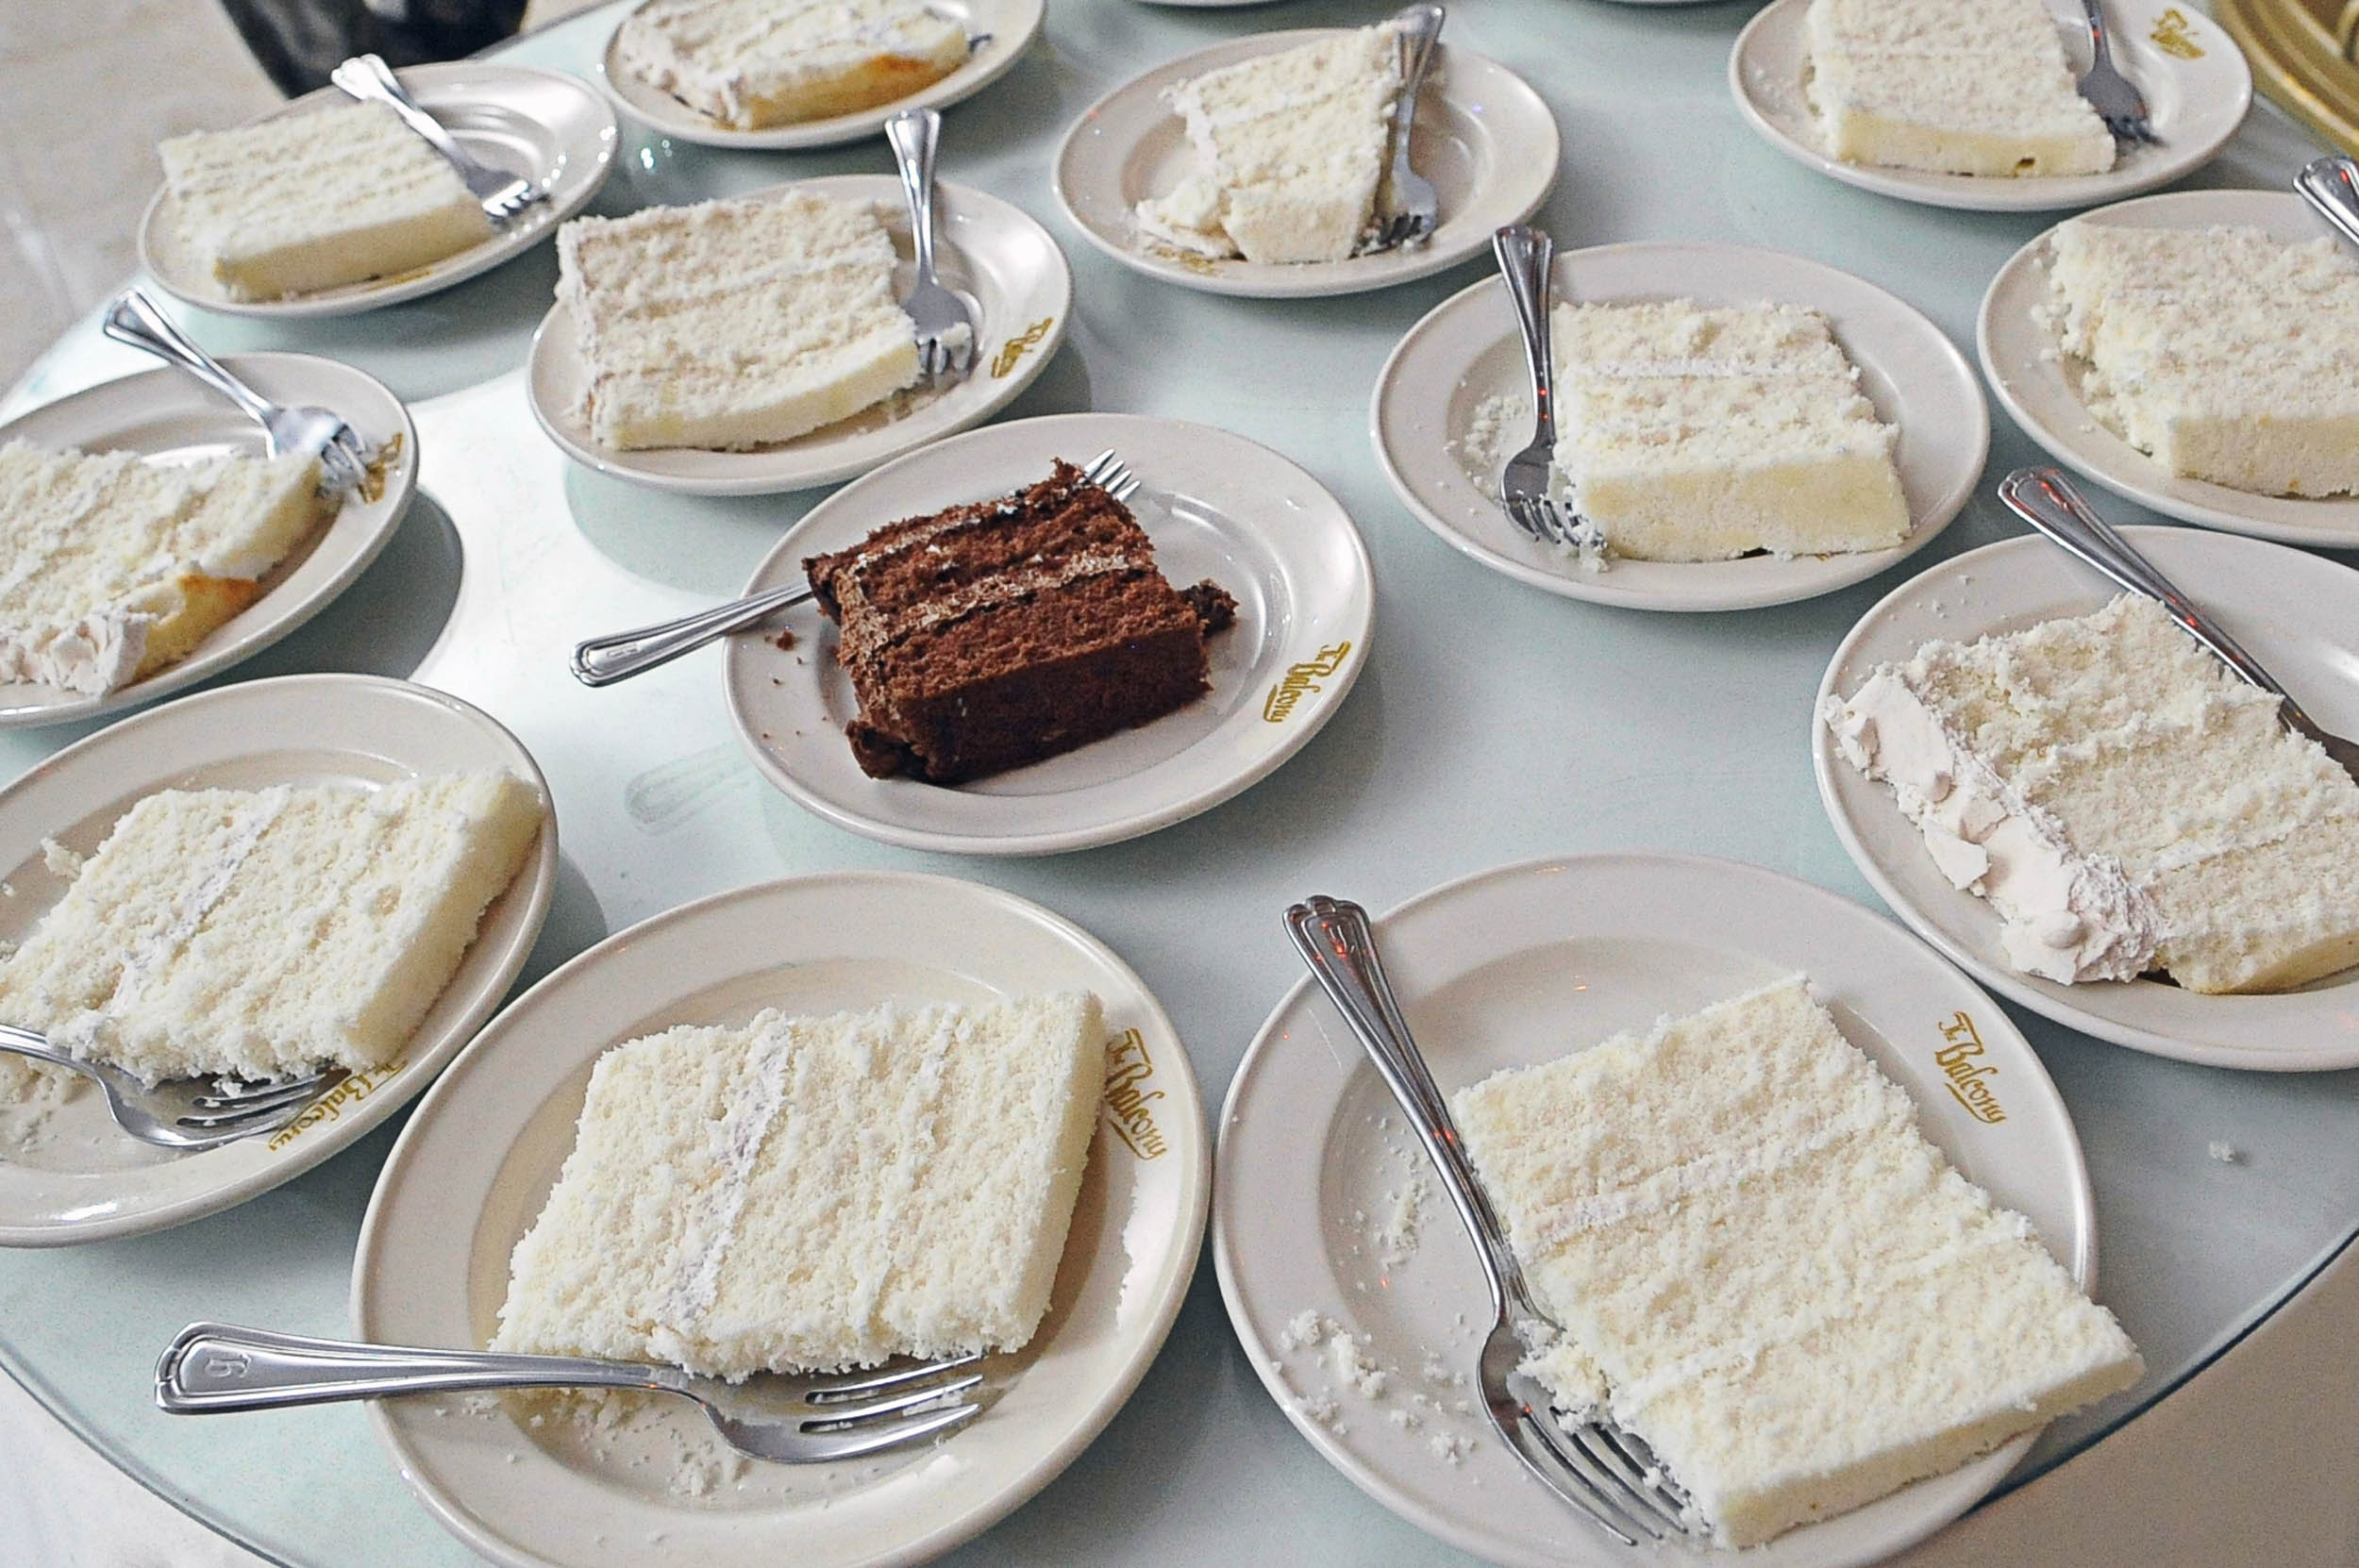 We serve your cake on actual real plates!!!